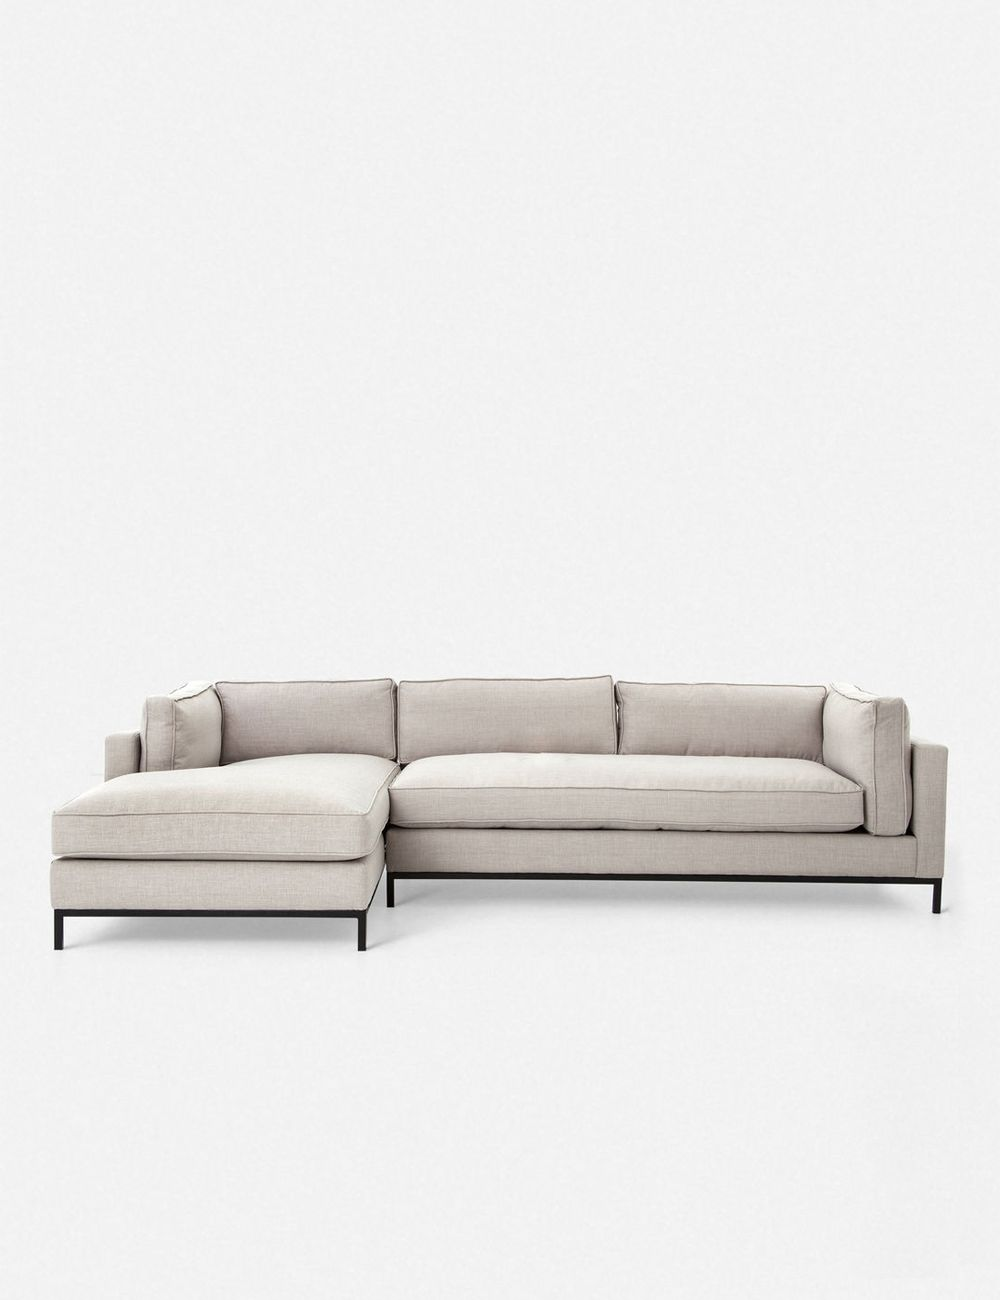 10 Best Sectional Sofas For Stylish Living Rooms Apartment Therapy